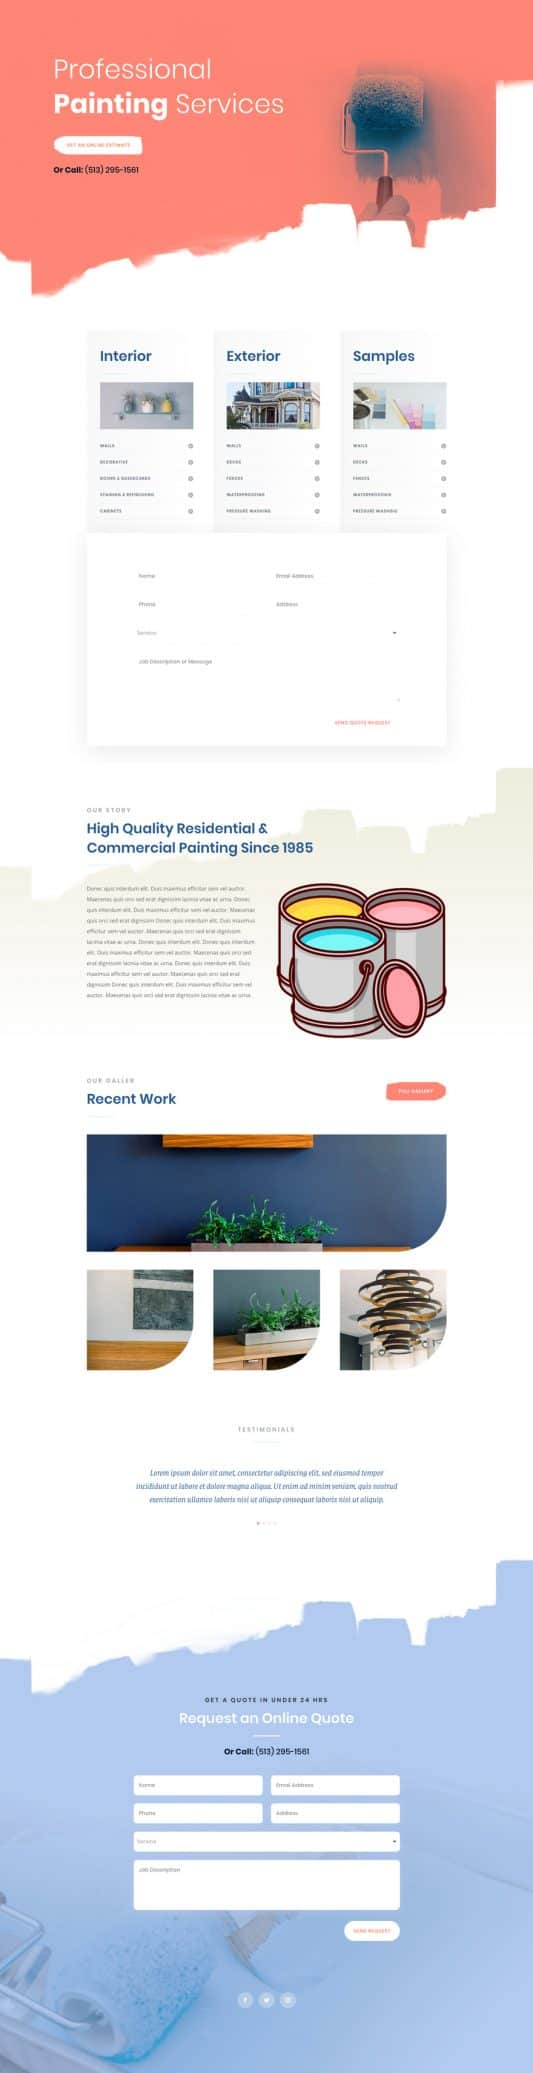 Painting Service Web Design 3